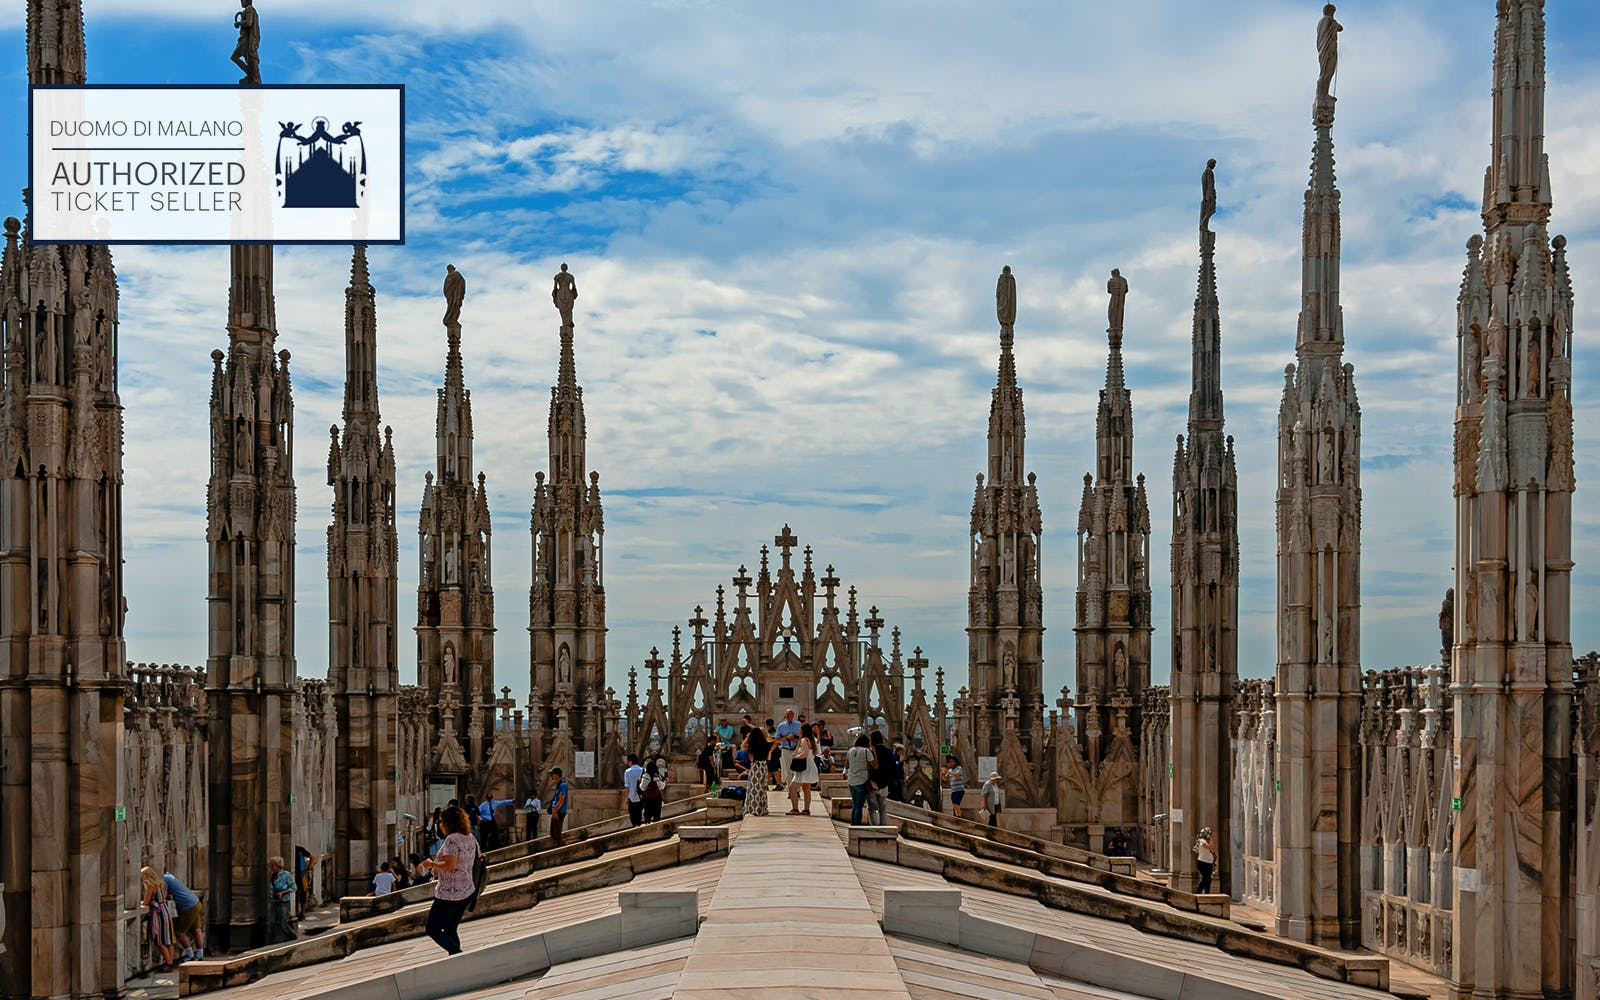 skip the line duomo di milano, rooftop & museum tickets-3